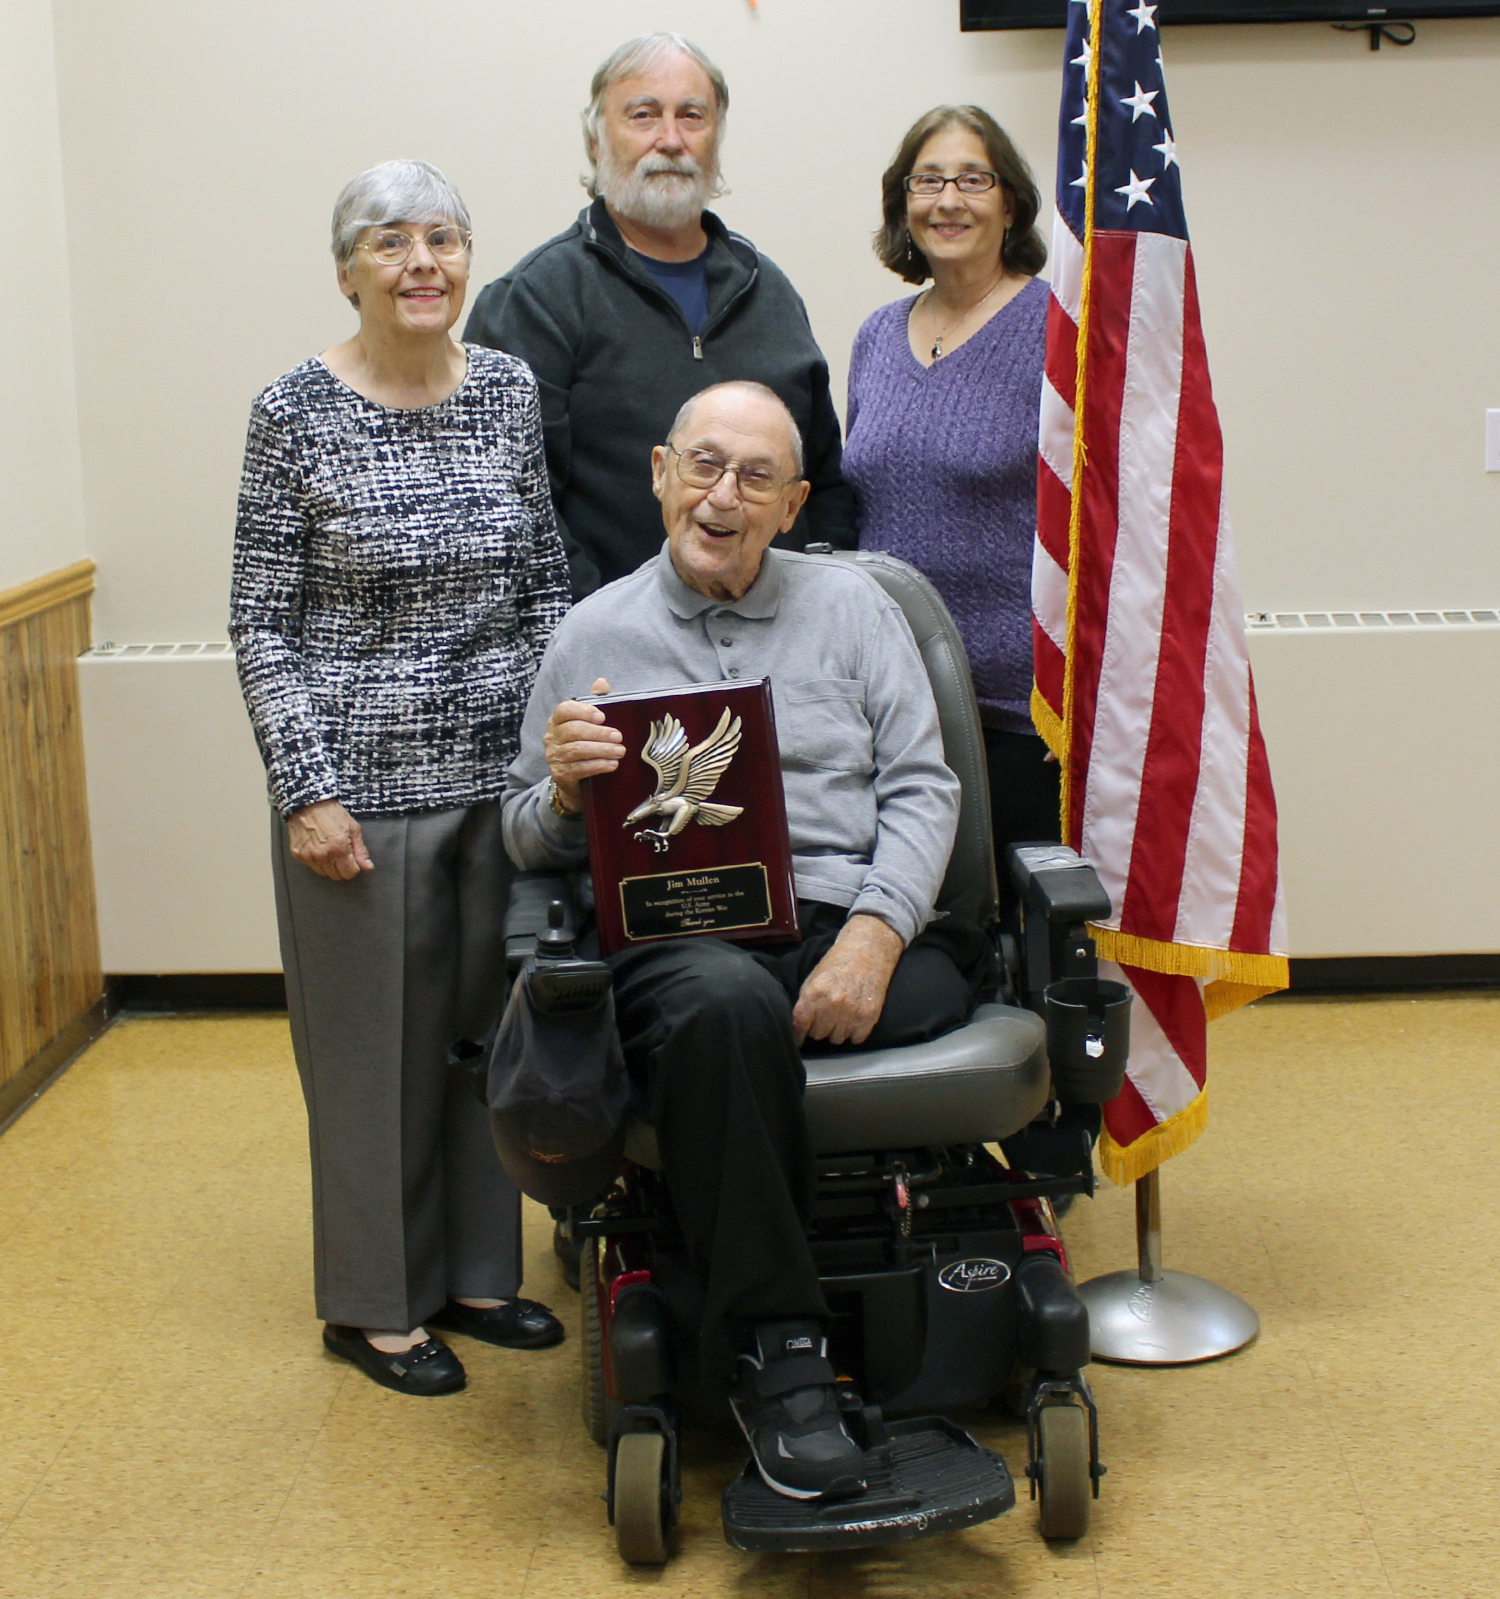 Korean War Veteran James Mullen with his wife, Saralynne, son, Glenn Mullen and daughter-in-law, Jana Mullen. Photo by Grace Griffee